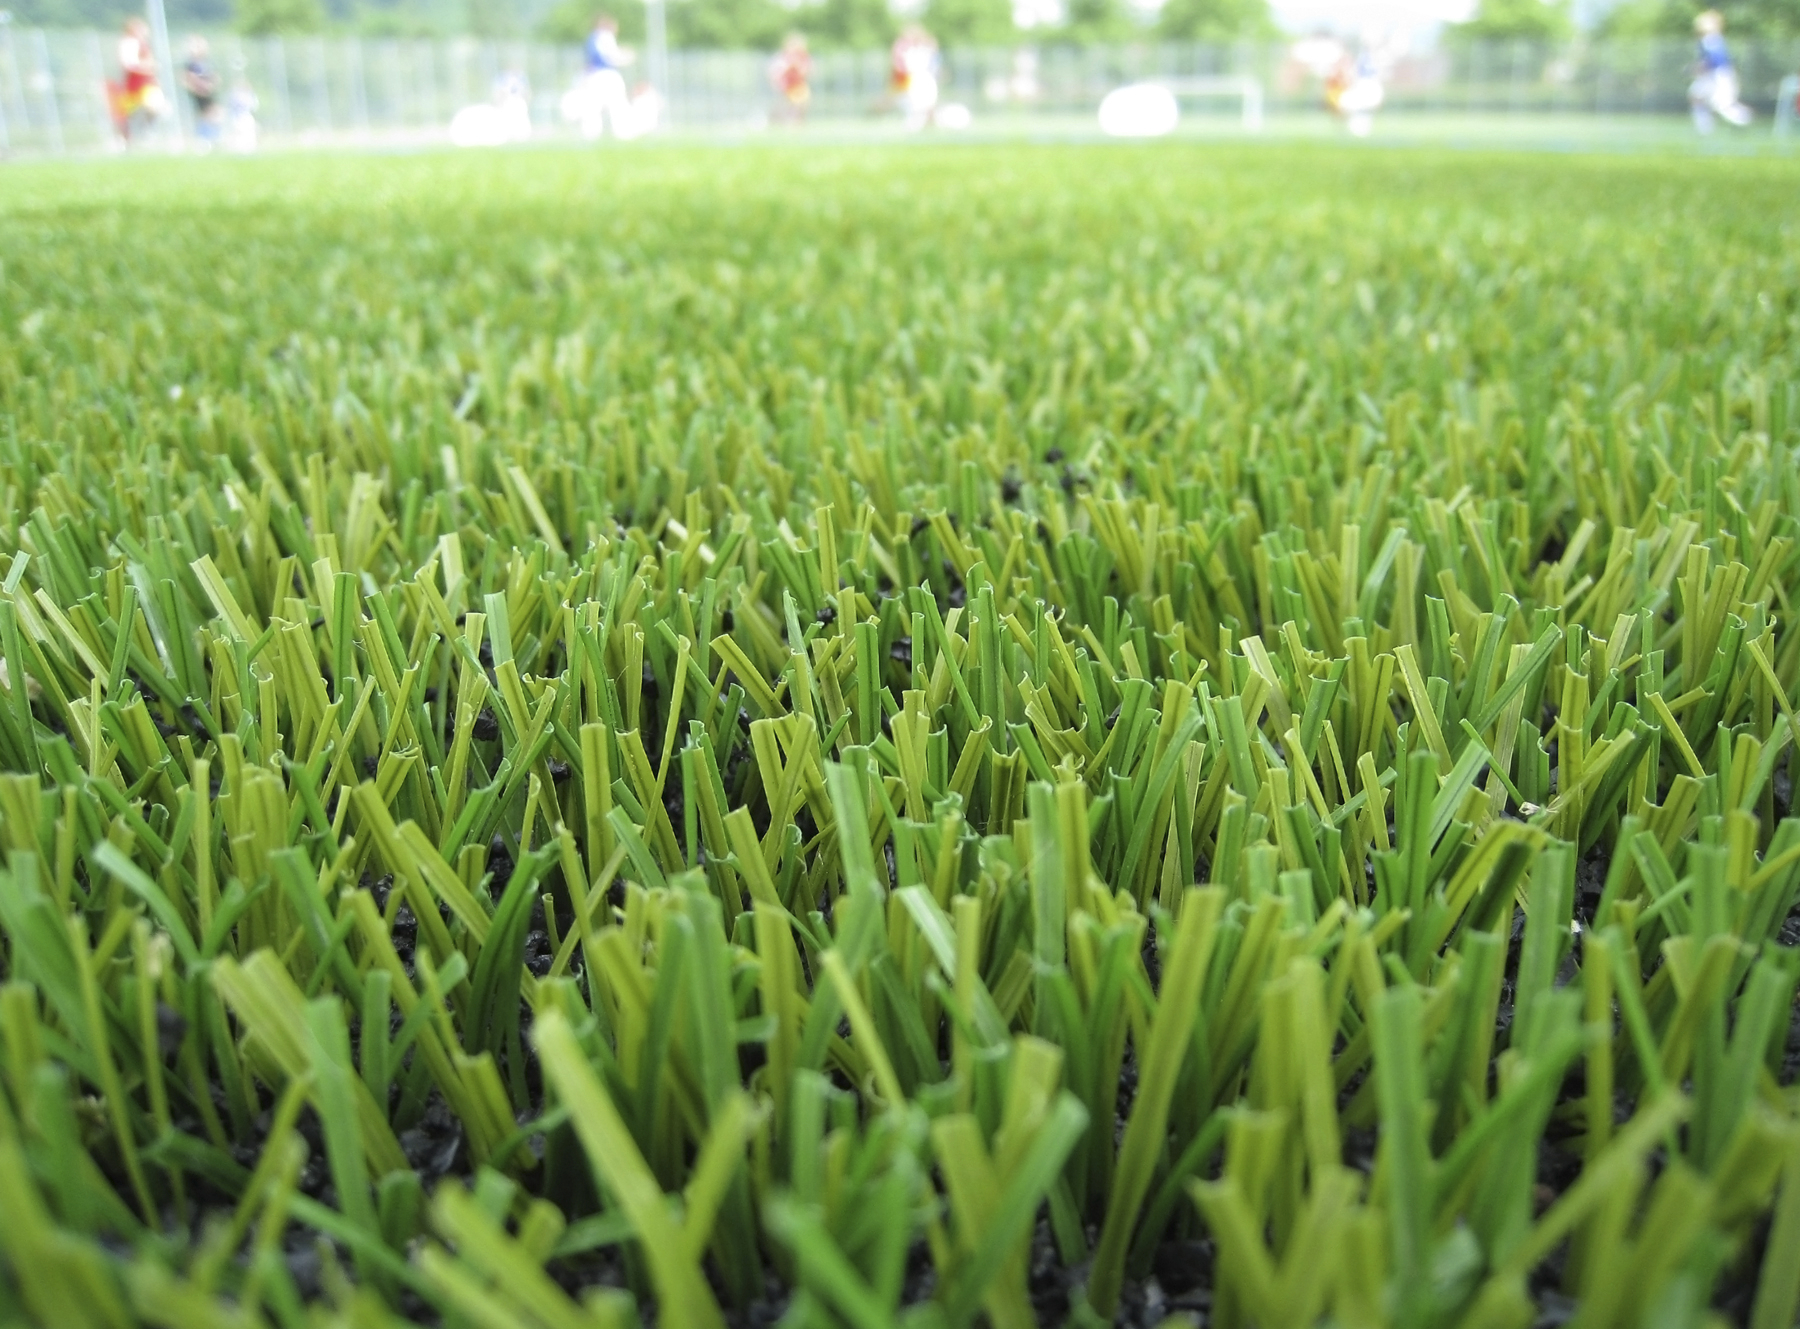 An upclose image of turf